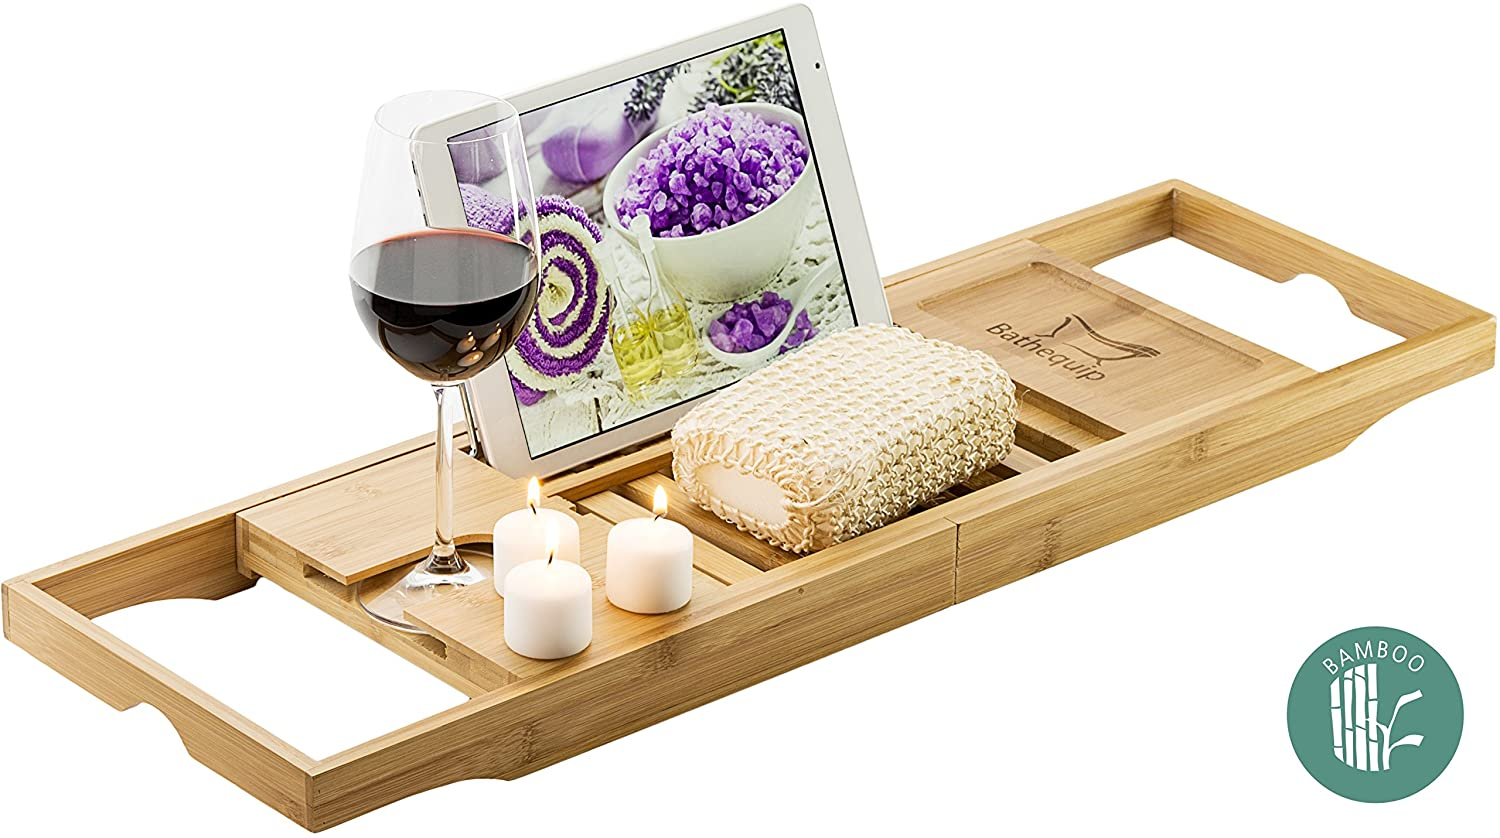 "Bamboo Bathtub Caddy Tray Organizer Extends to 41"" To Fit All bathtubs, with Multi-Angle Adjustable Bath Book Holder For Your Relaxing Bath Reading Experiance Wine Glass Slot and Cell Phone Compartment"